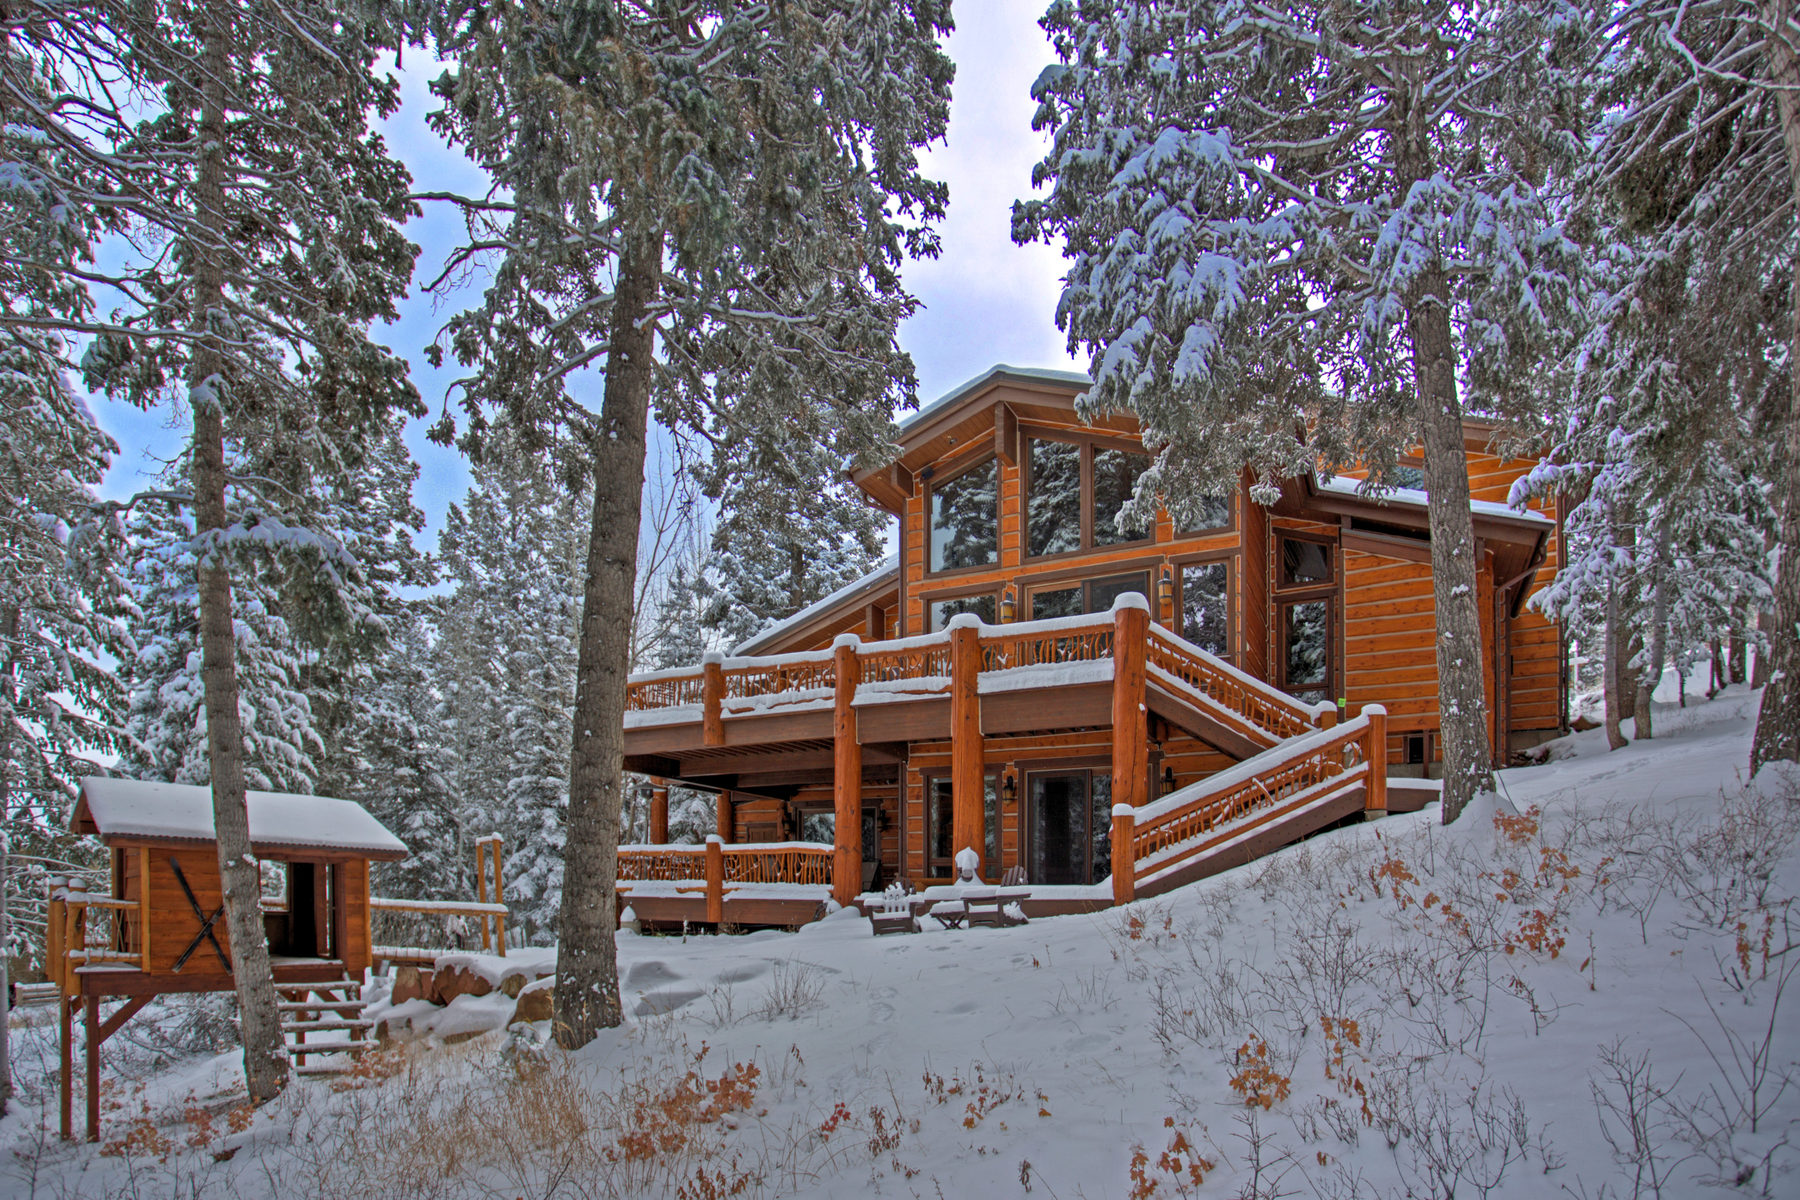 Single Family Home for Sale at Ski-In/Ski-Out Deer Valley Home 6935 Silver Lake Dr Park City, Utah 84060 United States